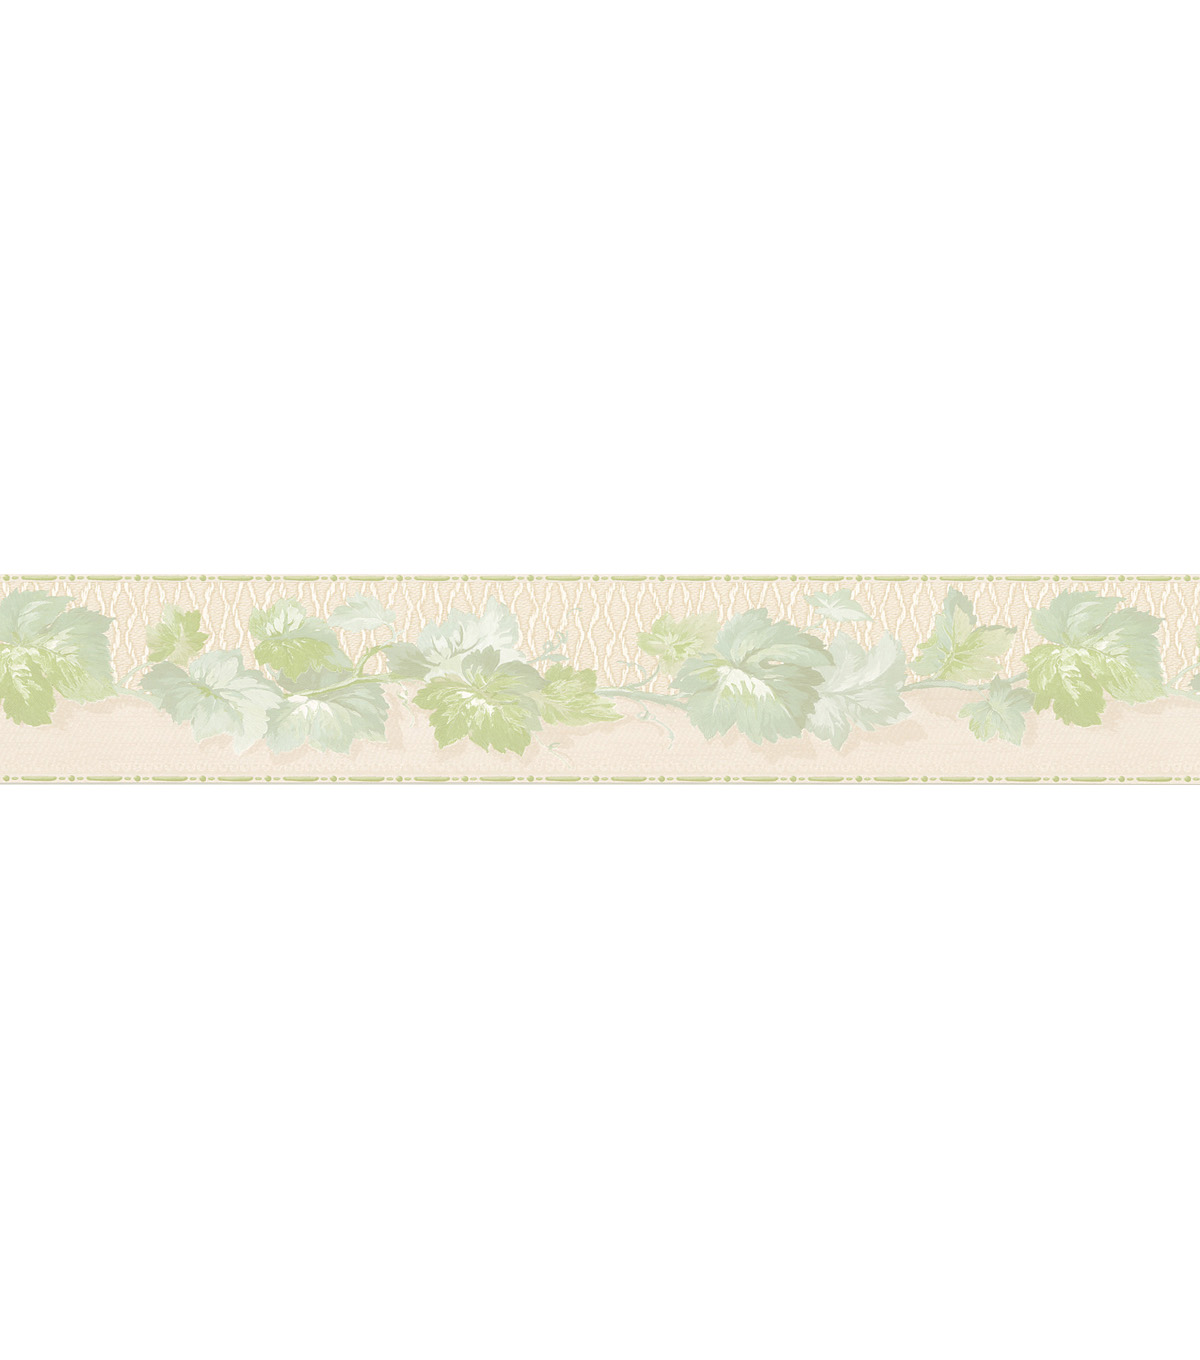 Ivy Trail Wallpaper Border, Green